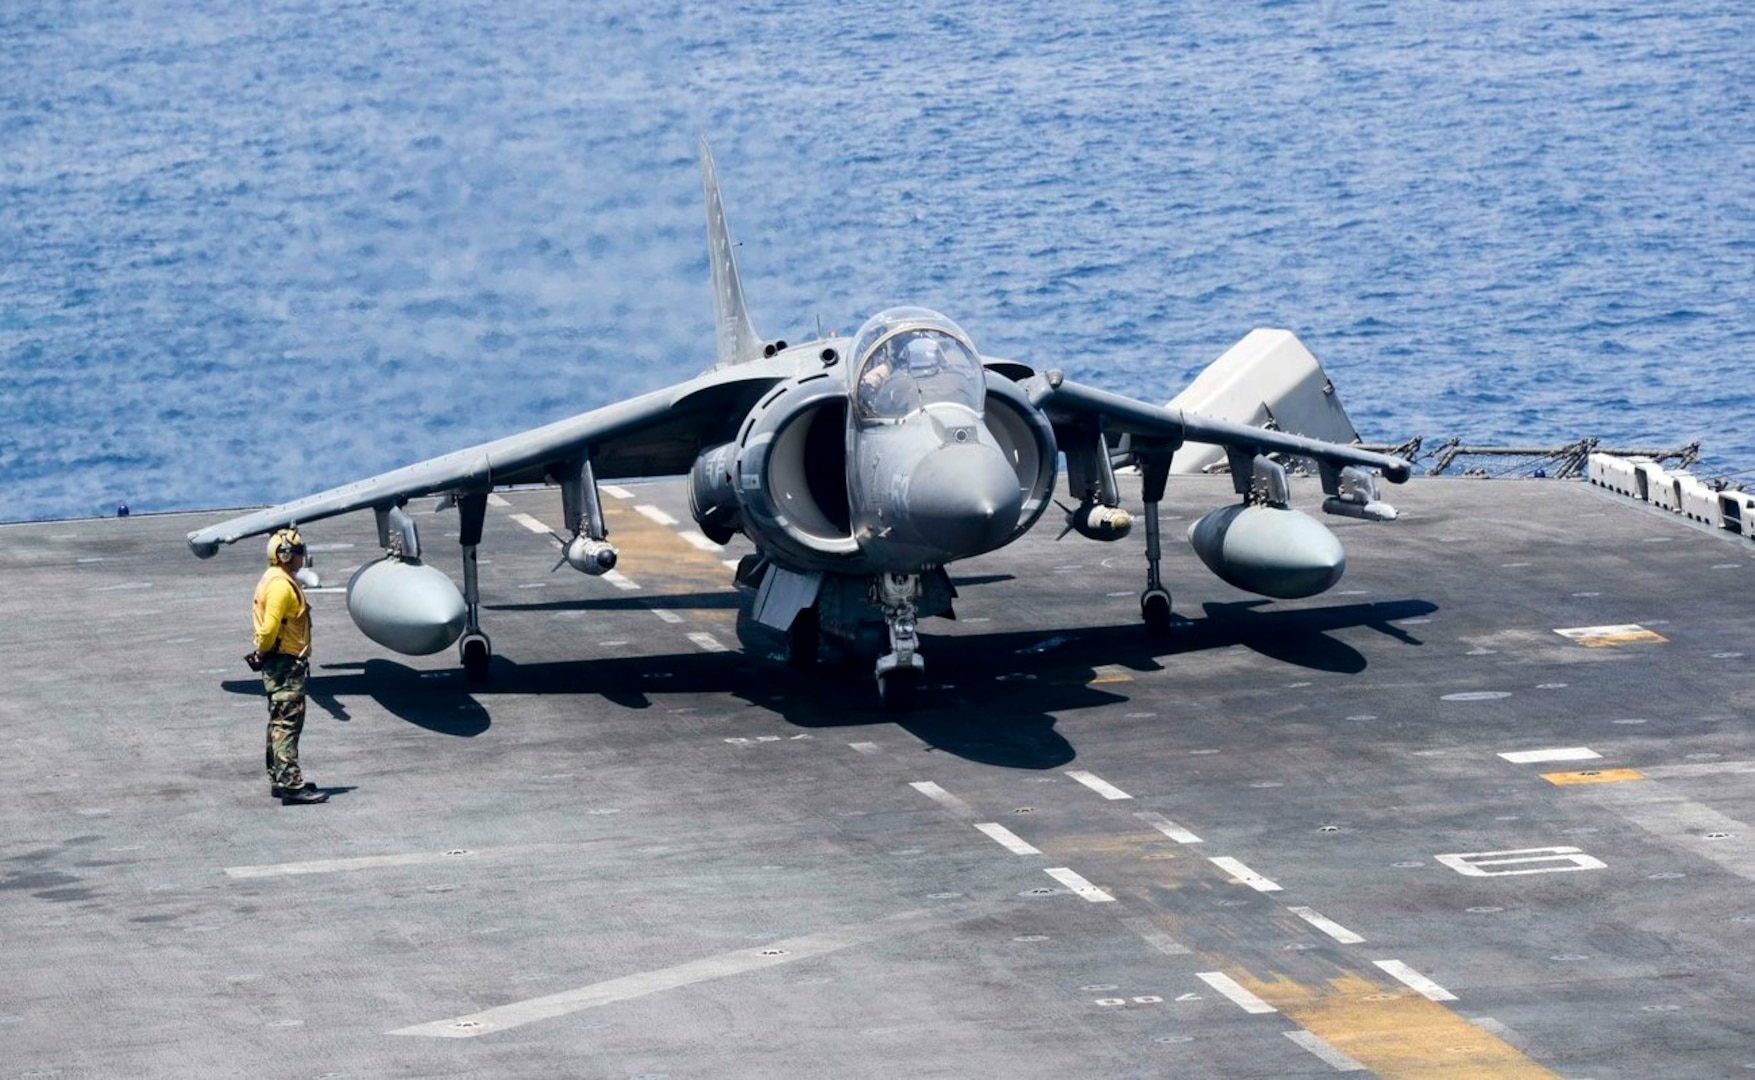 An AV-8B Harrier II, assigned to the 13th Marine Expeditionary Unit (MEU), prepares to launch from the amphibious assault ship USS Boxer (LHD 4) to conduct missions in support of Operation Inherent Resolve.